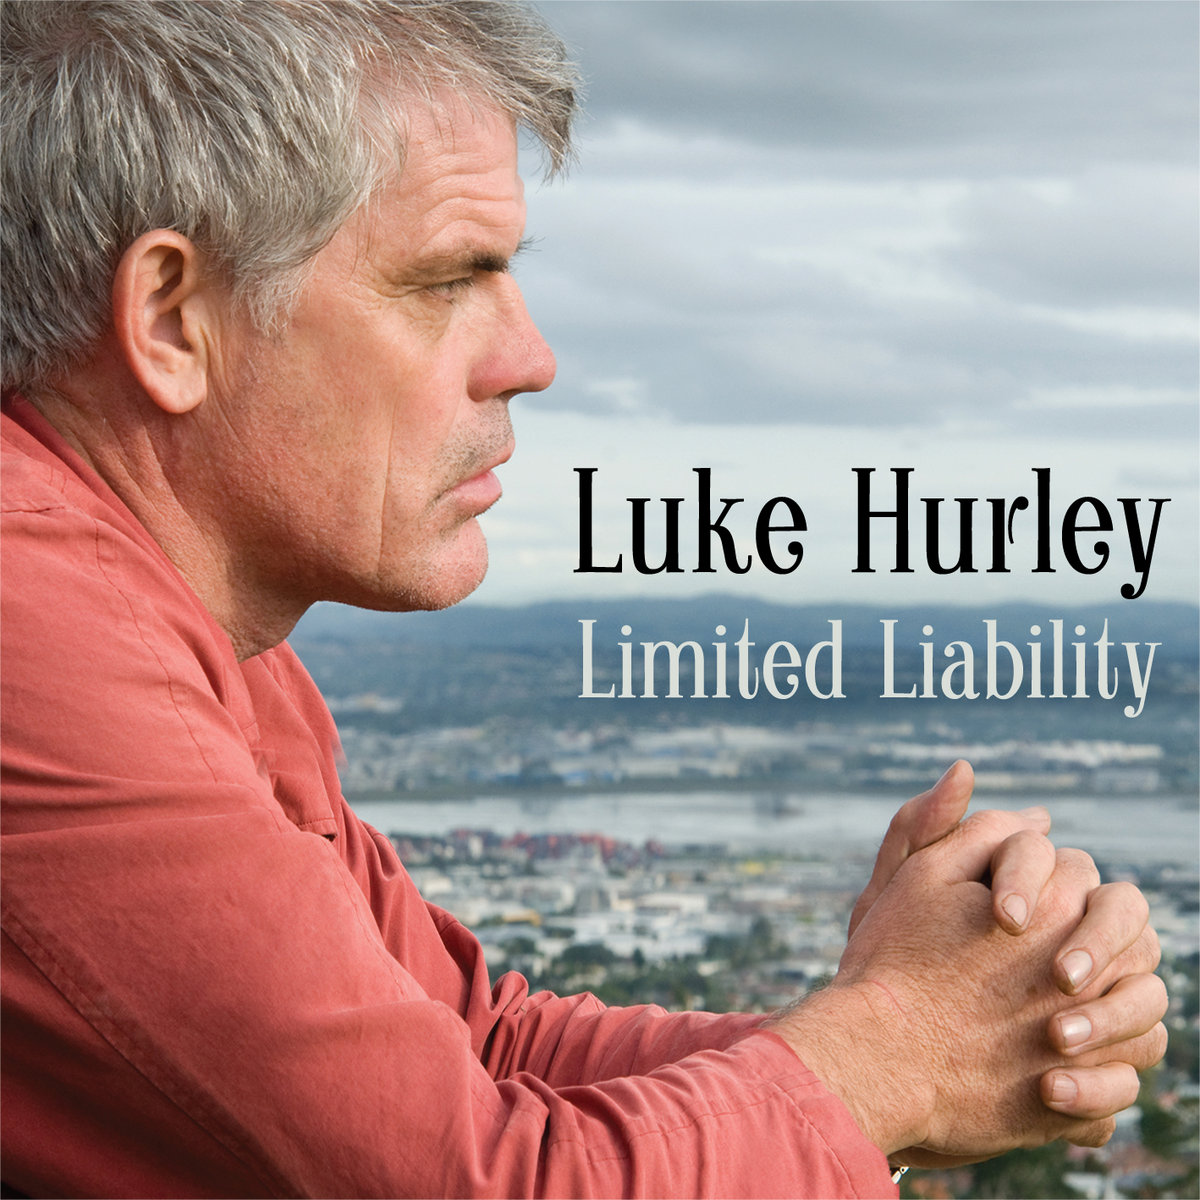 Luke Hurley - Limited Liability